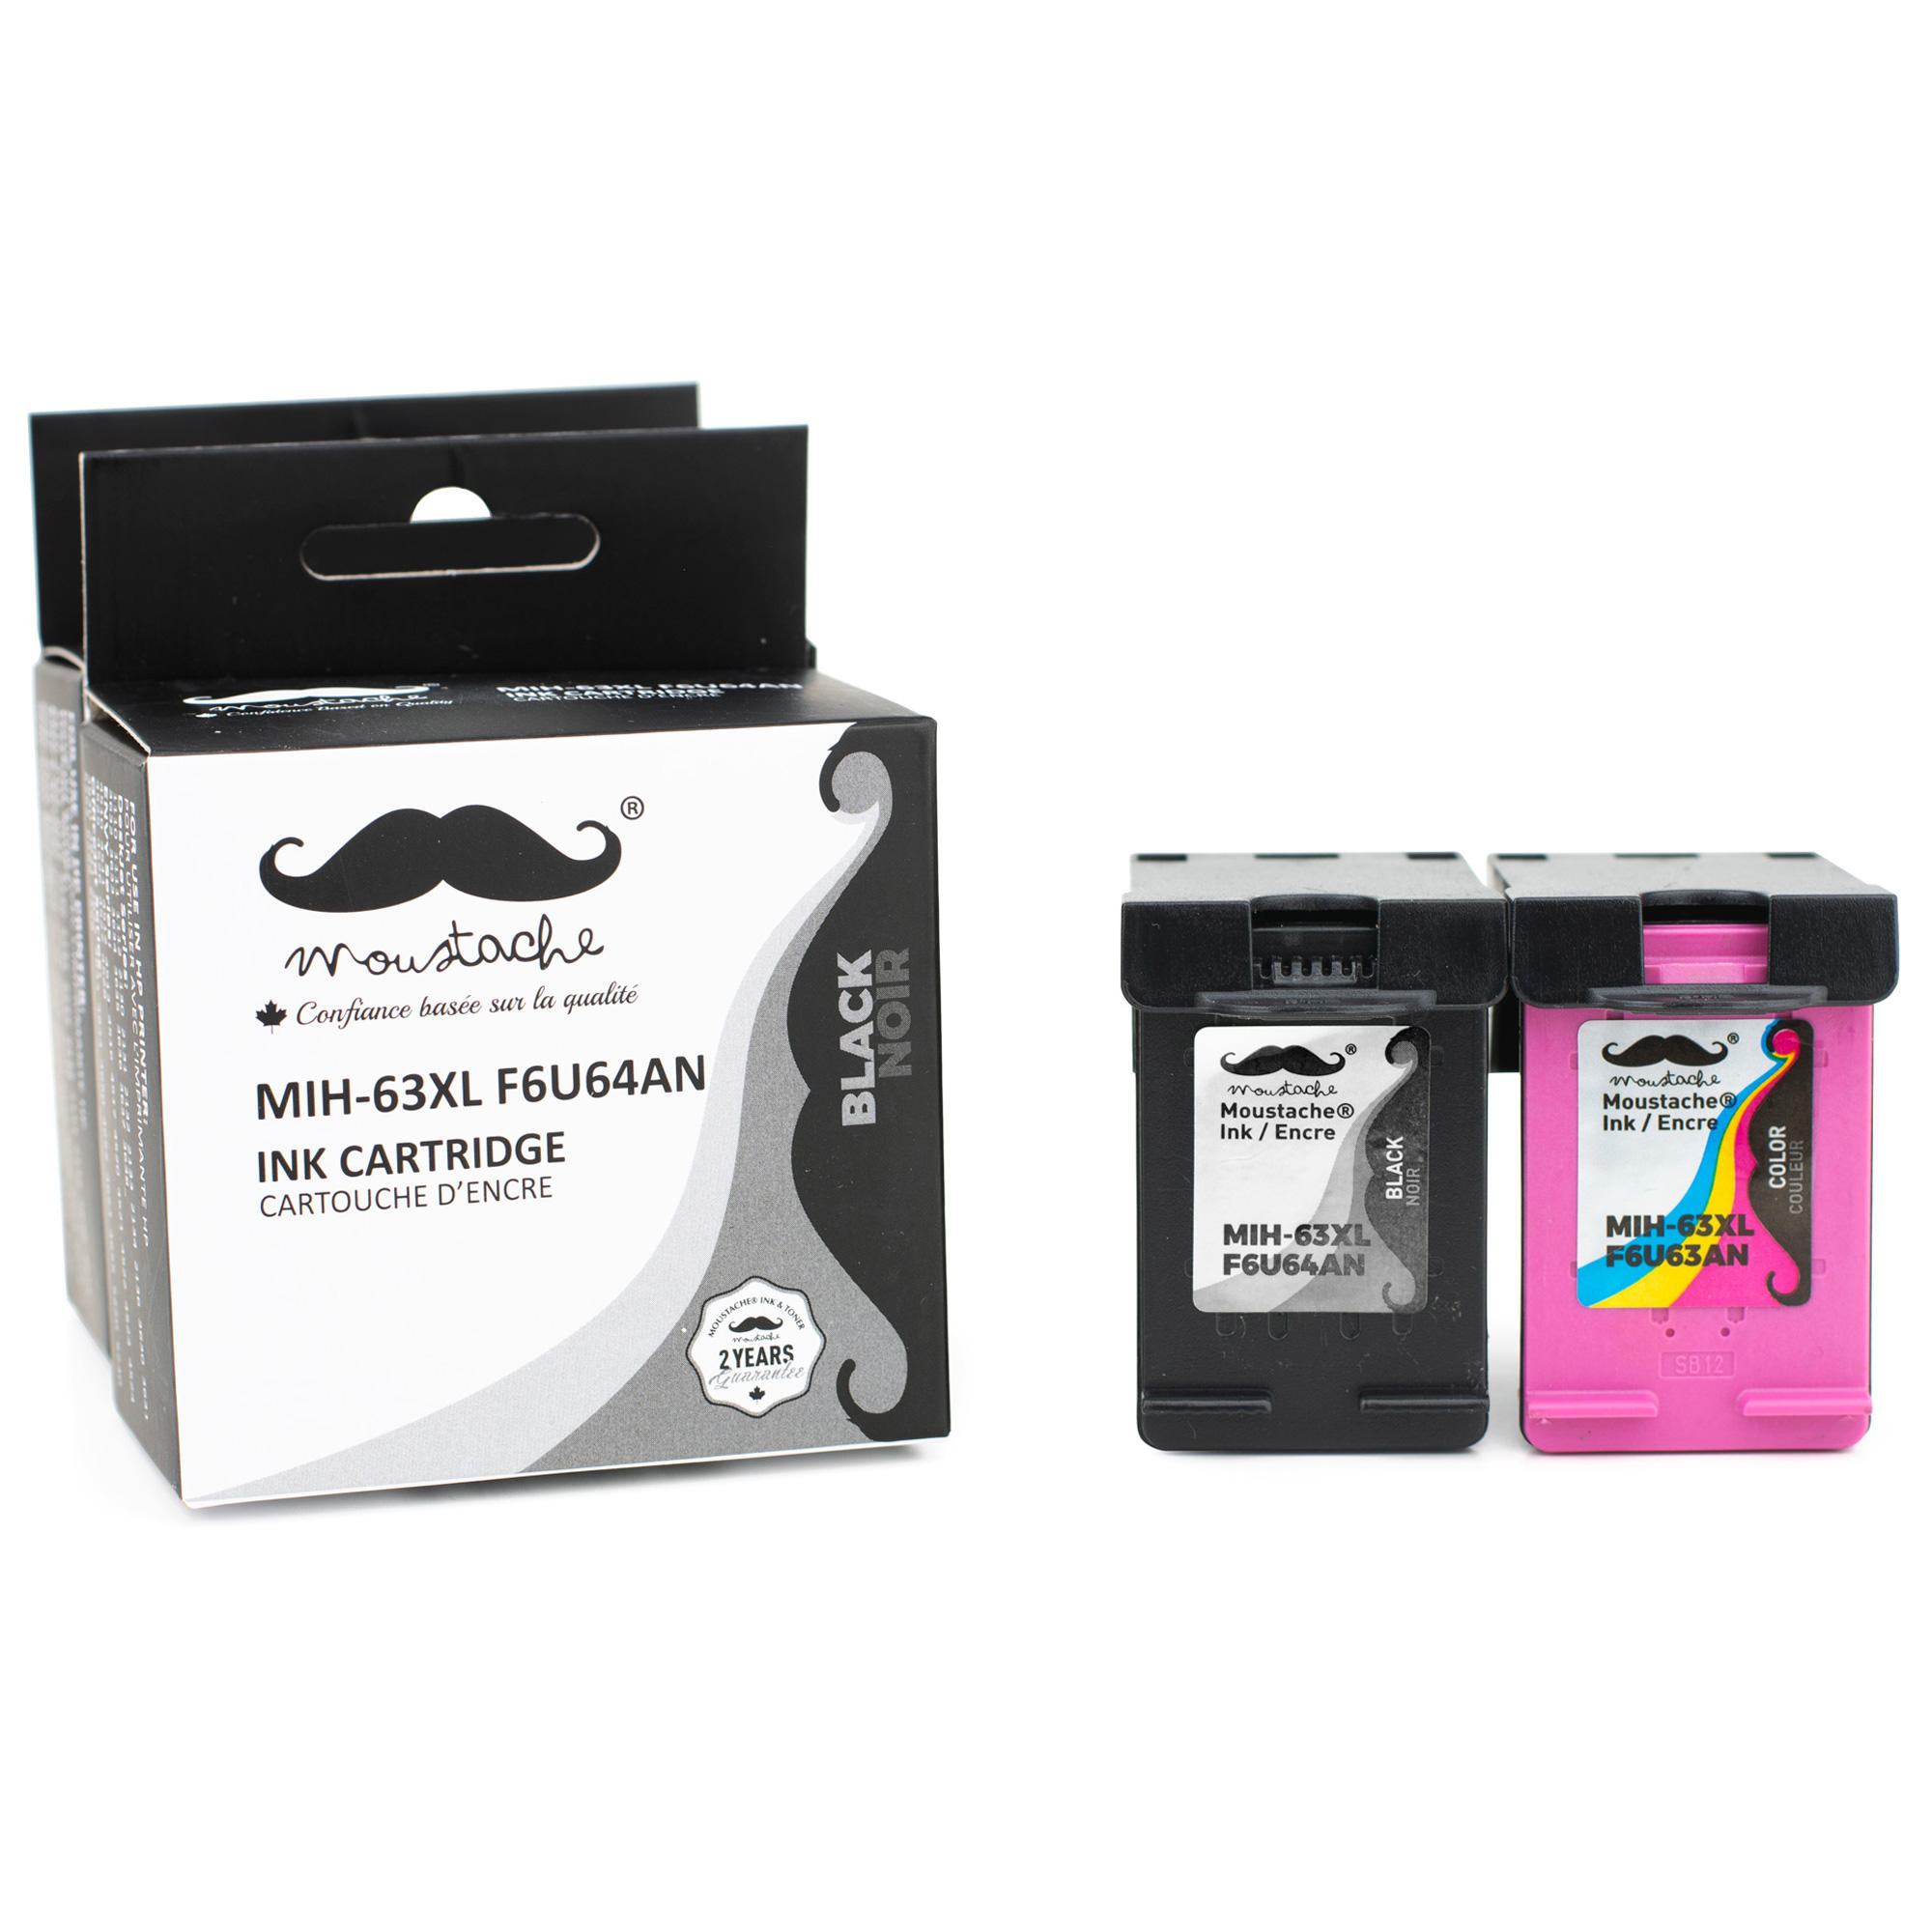 Remanufactured HP 63XL F6U64AN F6U63AN Ink Cartridge Black and Color Combo High Yield - Moustache®